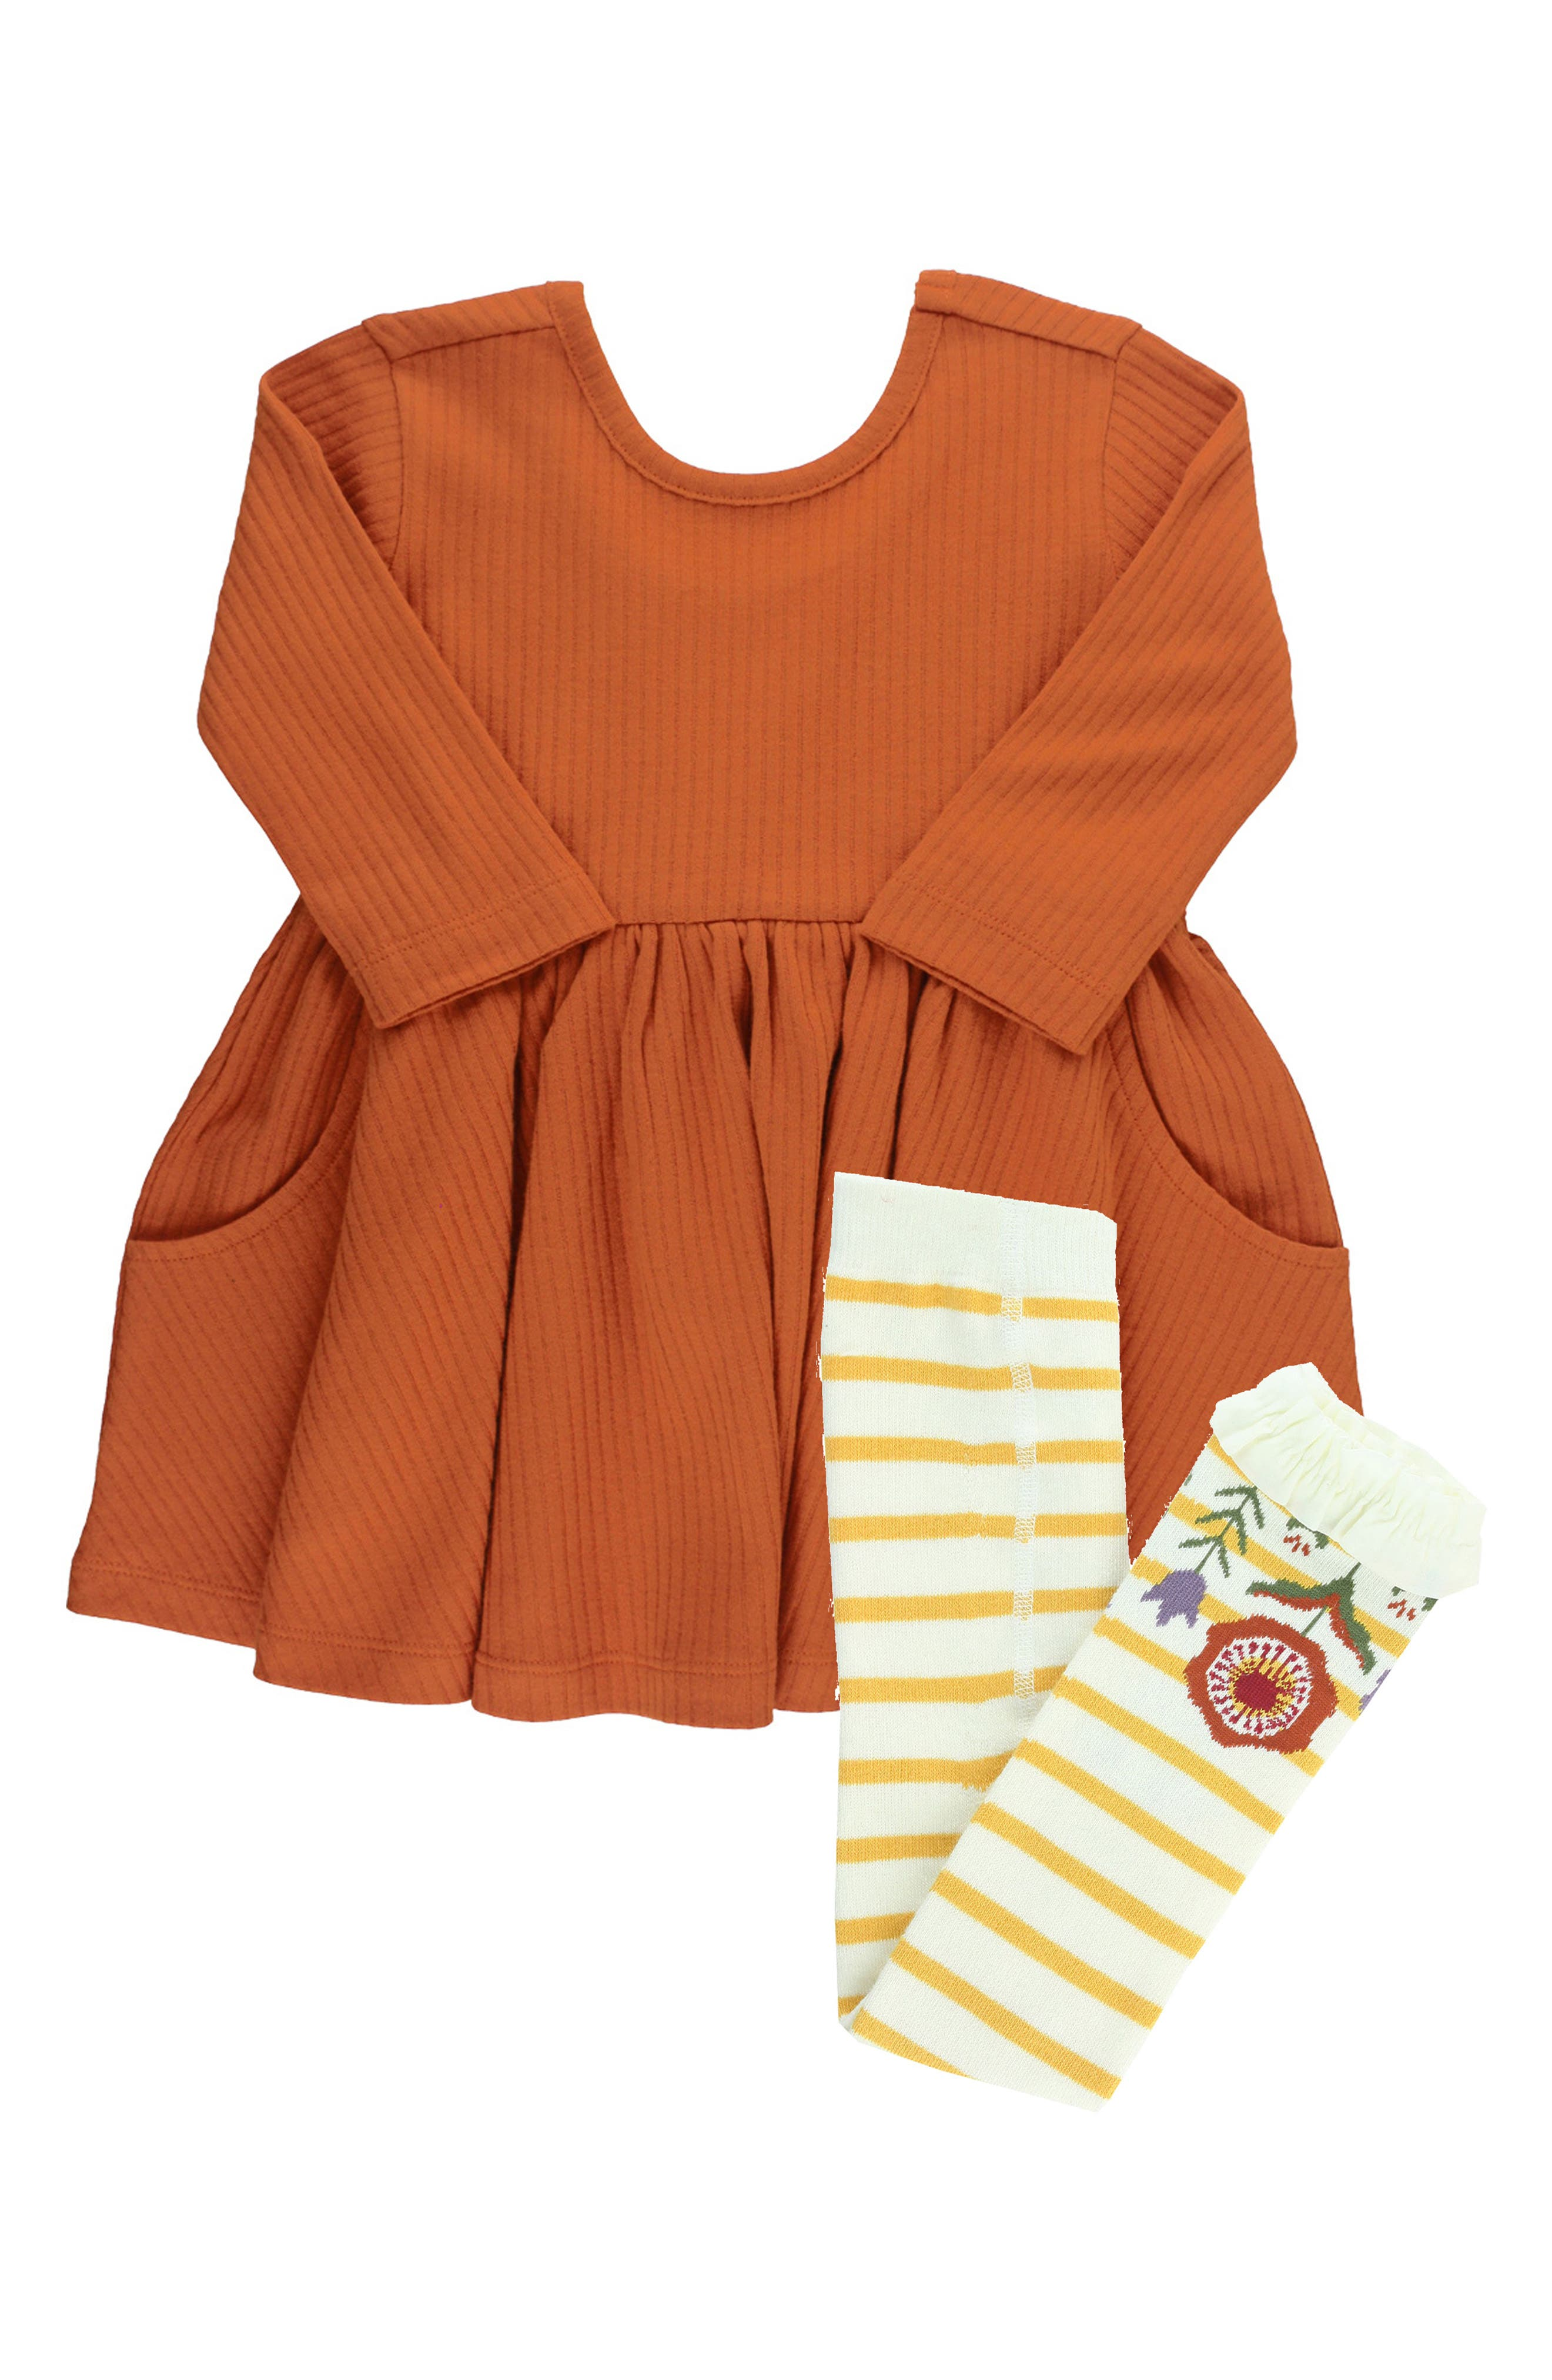 A perfect bow details the back of a ribbed cotton dress that pairs charmingly with soft, stretchy knit tights trimmed with sweet ruffles. Style Name: Rufflebutts Orange Spice Ribbed Twirl Dress & Tights Set (Baby). Style Number: 6118808. Available in stores.